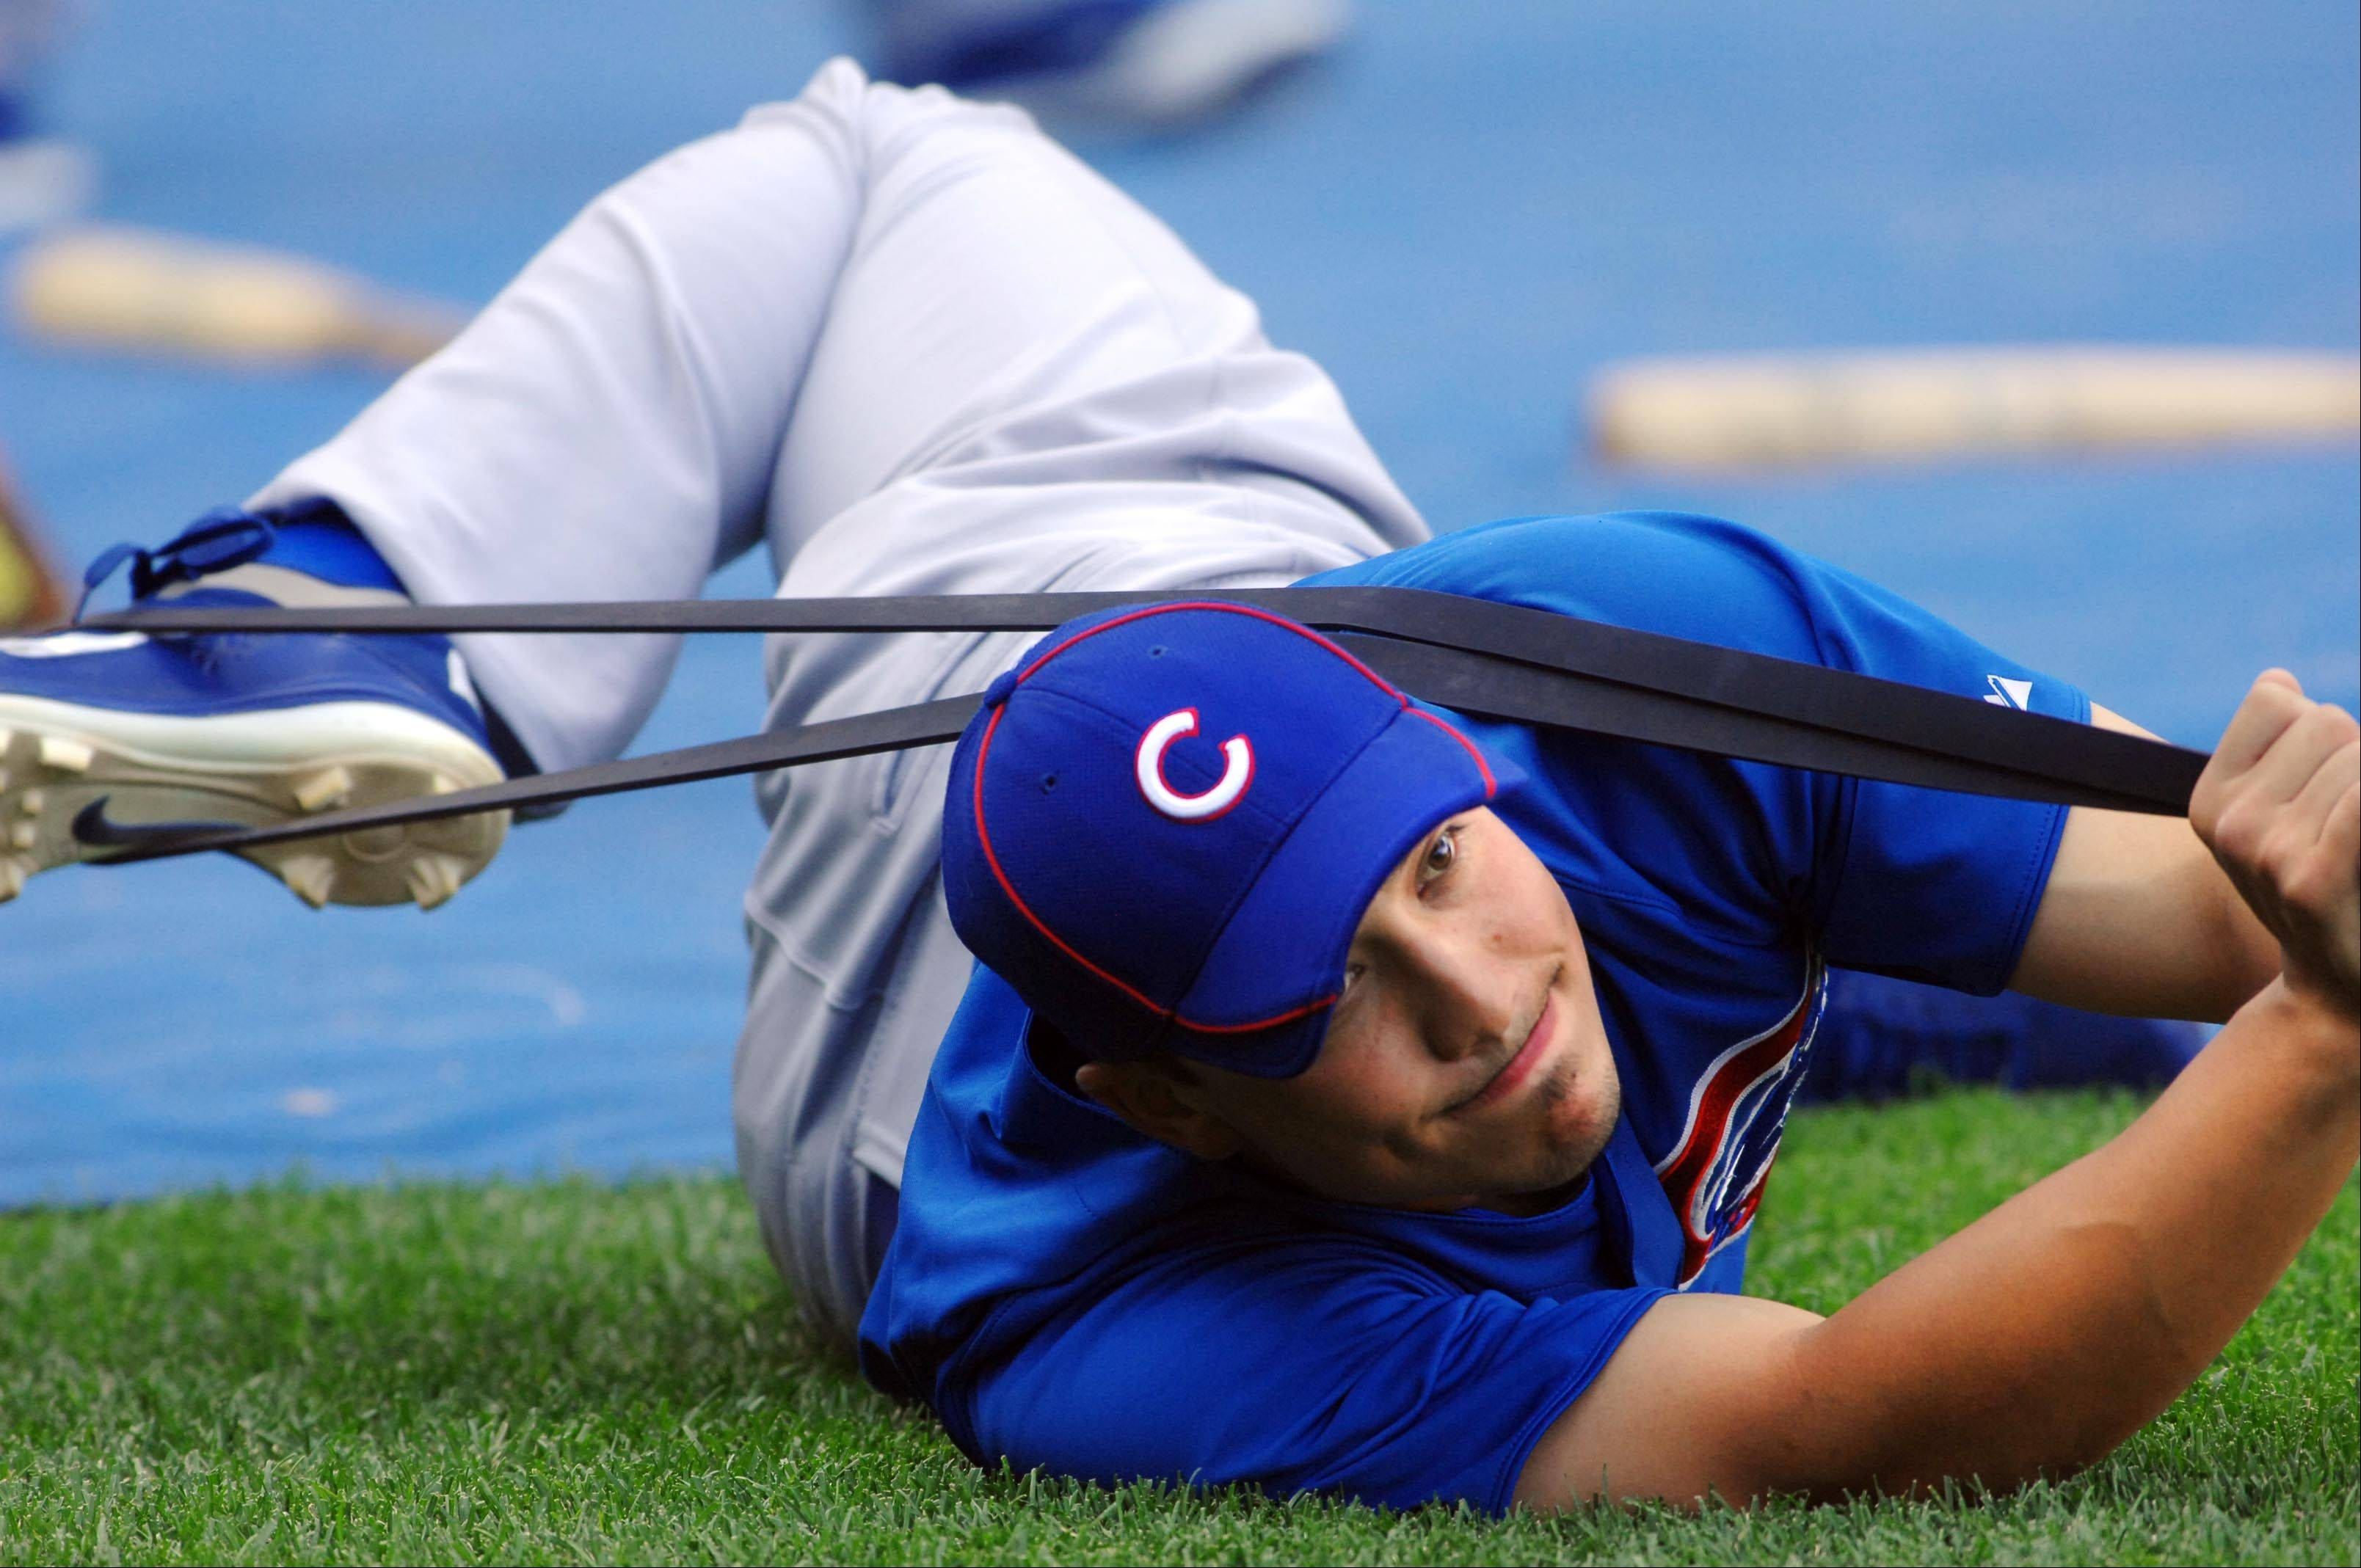 Chicago Cubs second baseman Darwin Barney stretches before the game.